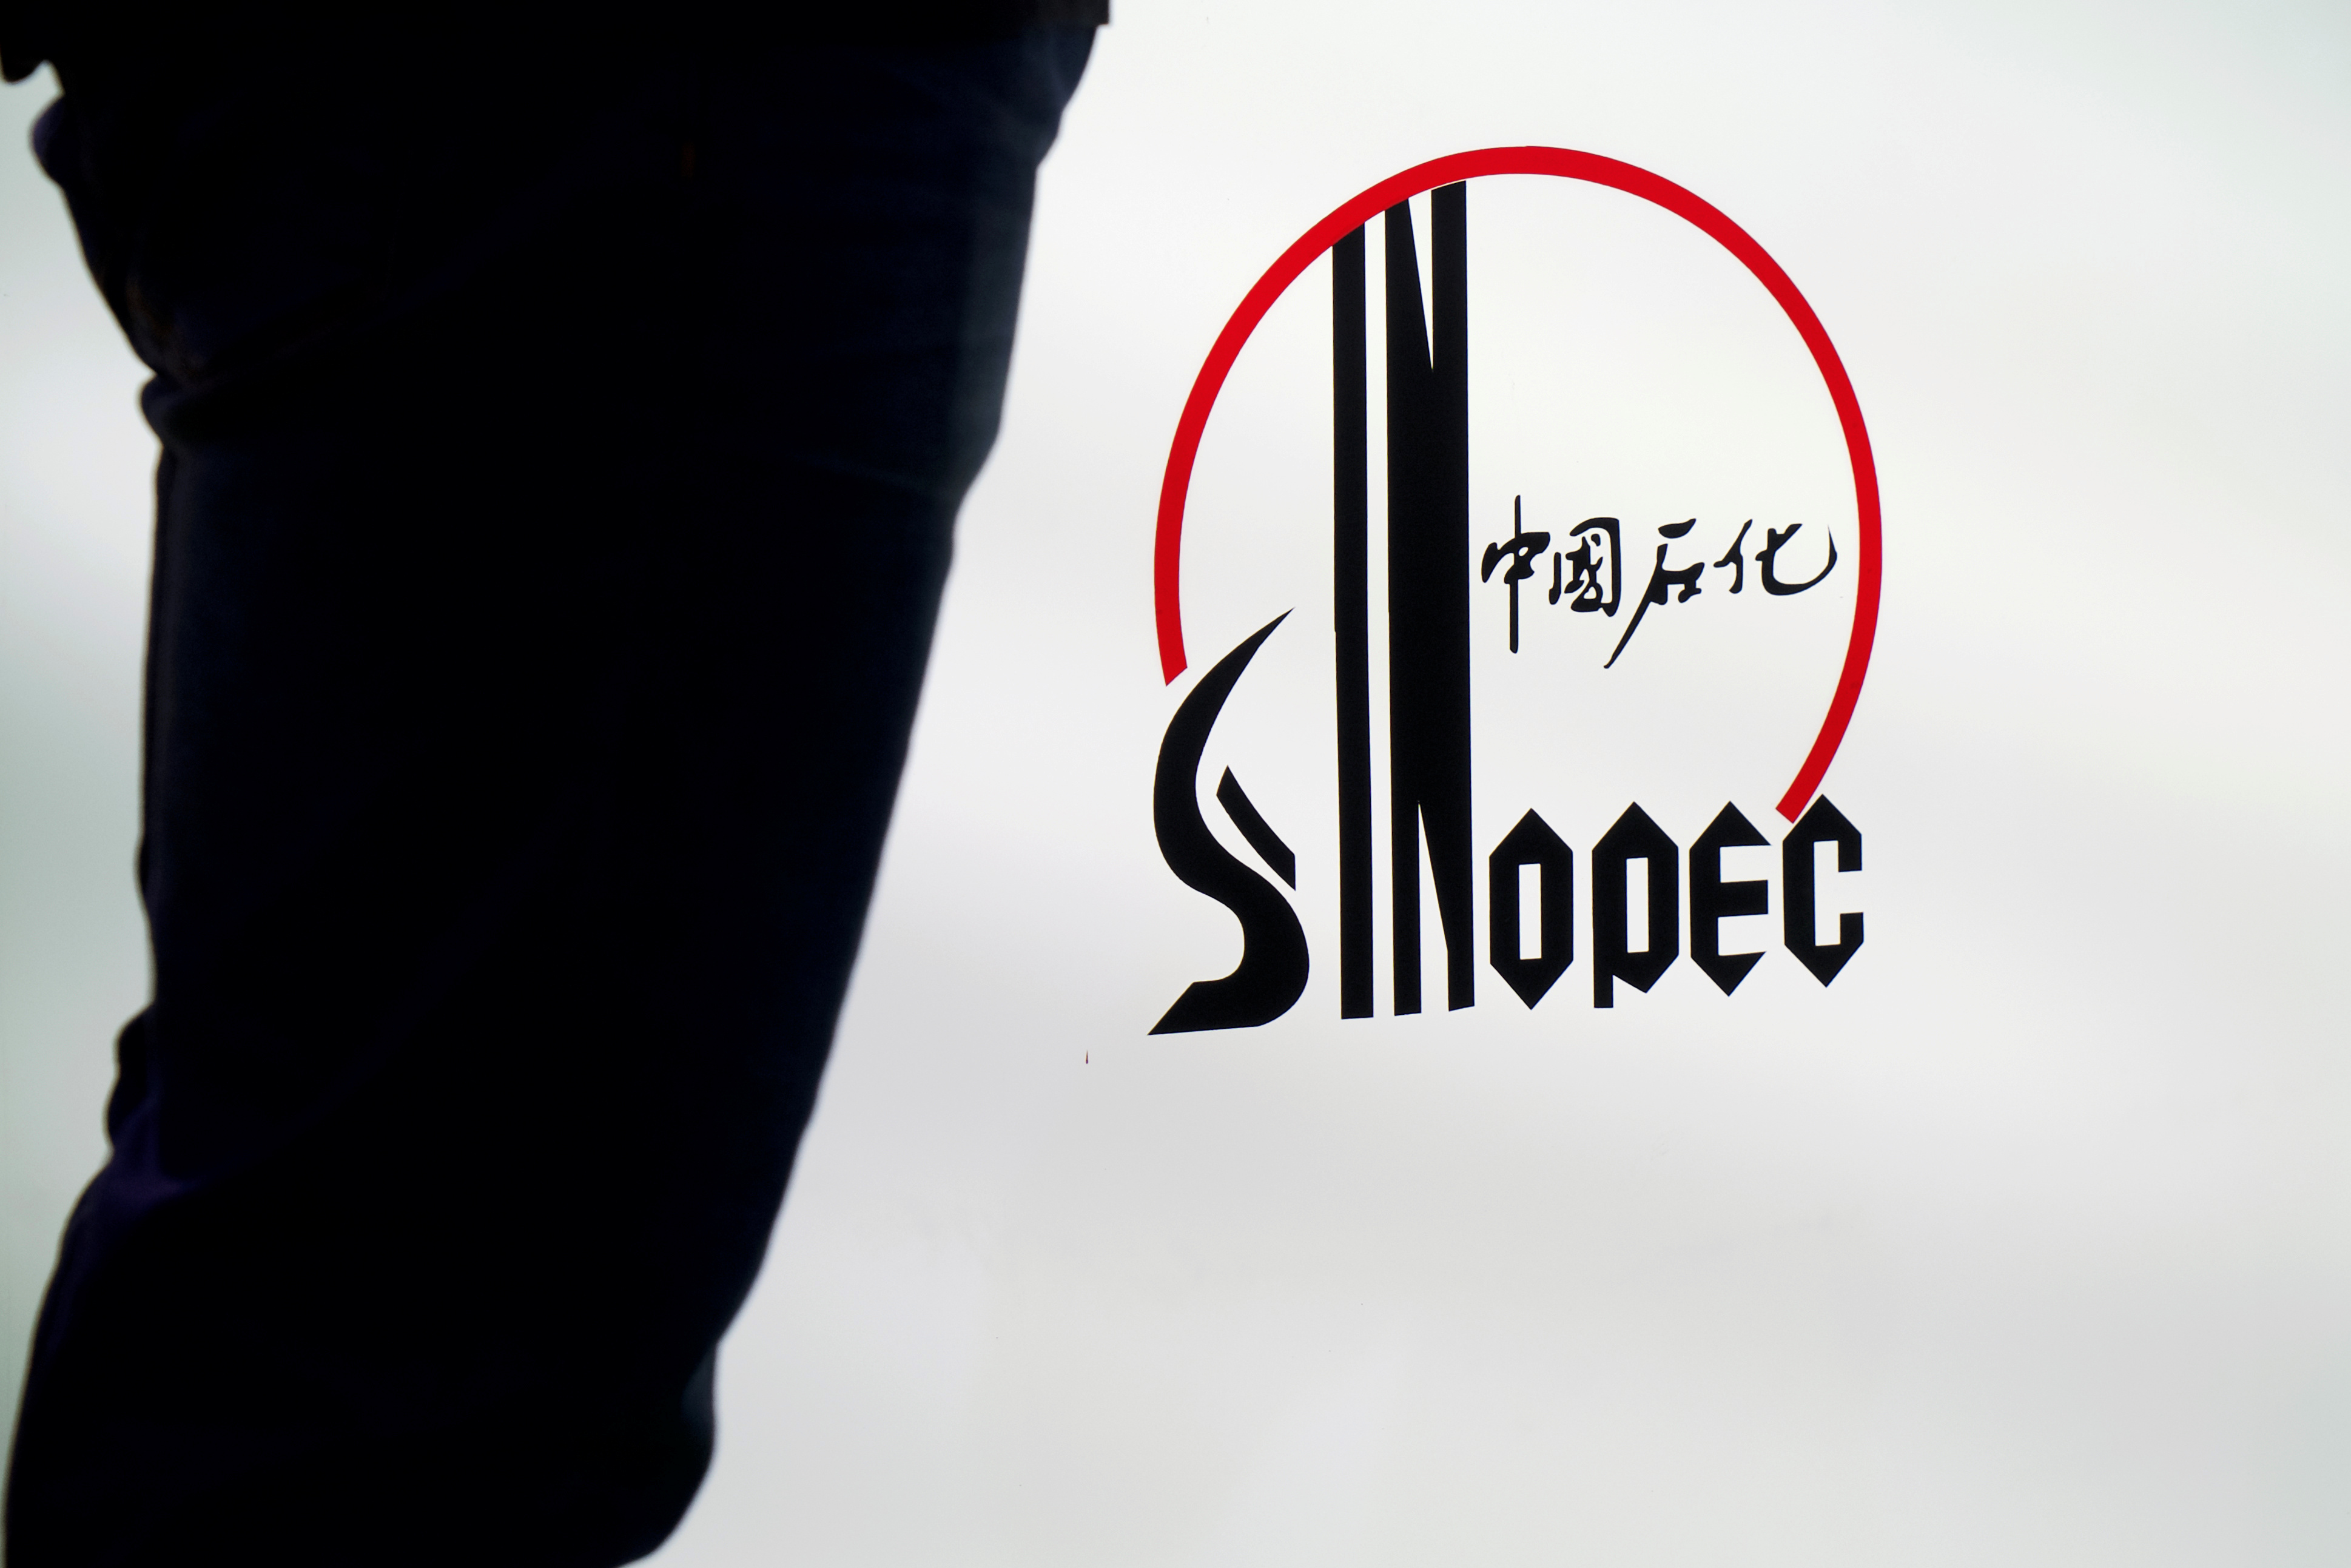 A man stands next to a logo of Sinopec, or China Petroleum and Chemical Corporation, at an expo on rubber technology in Shanghai, China September 19, 2018. Picture taken September 19, 2018. REUTERS/Stringer